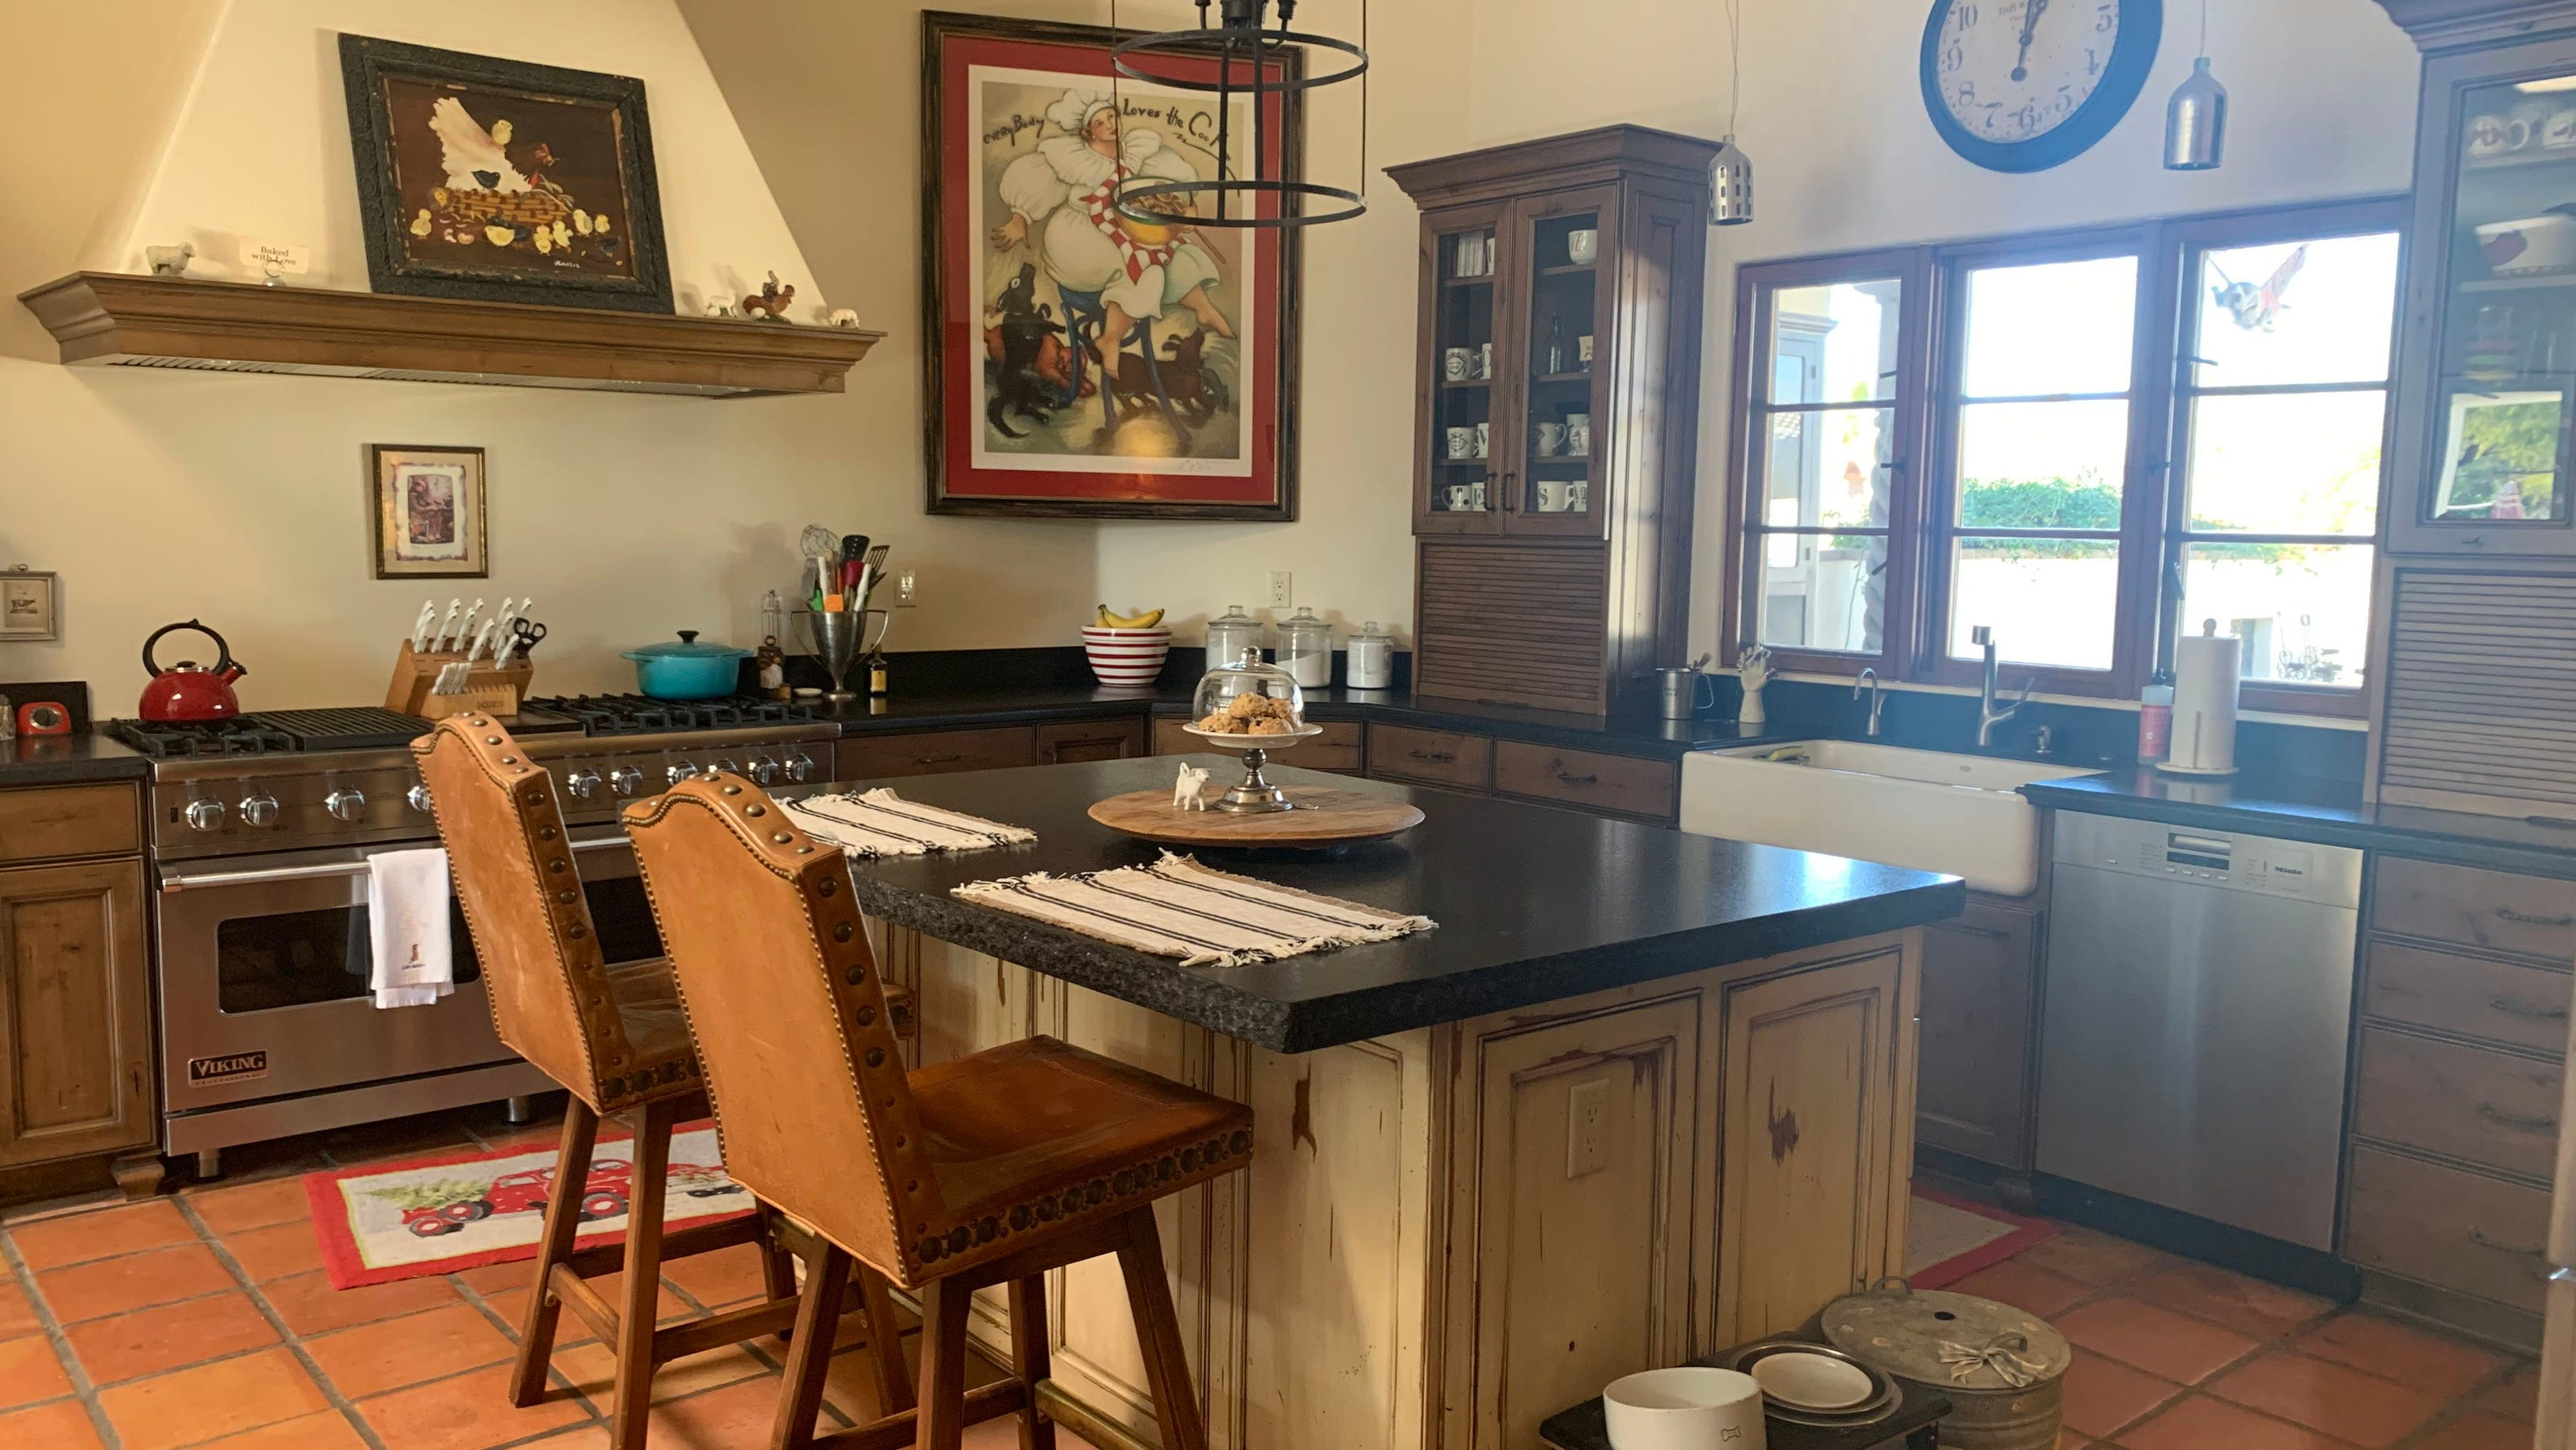 52 Year Old Hidden Gem In Chaparral Estates Is A Scottsdale Of Old Home